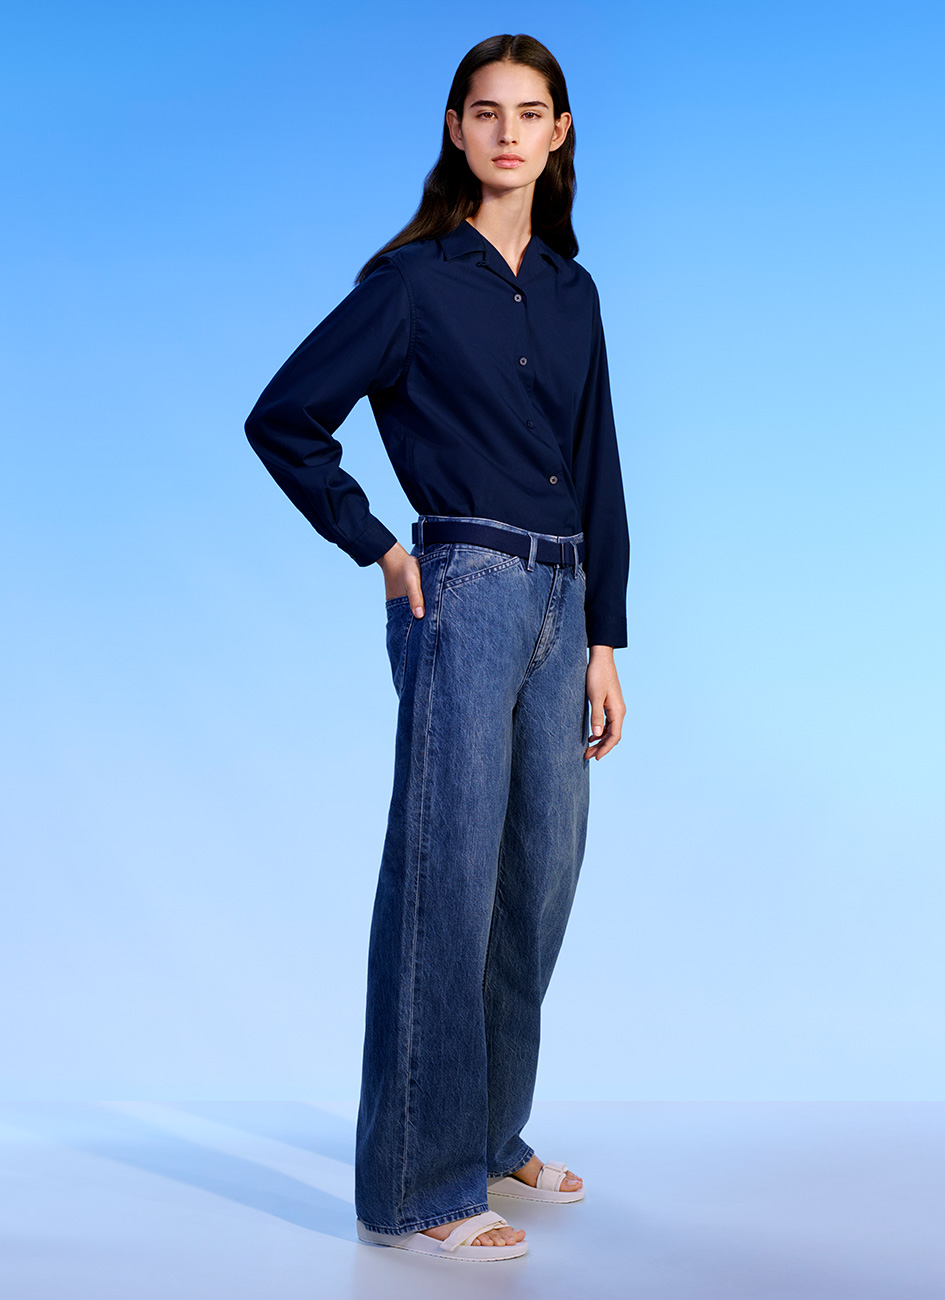 UNIQLO U by CHRISTOPHE LEMAIRE  LOOKBOOK IMAGE  SPRING/ SUMMER 2018